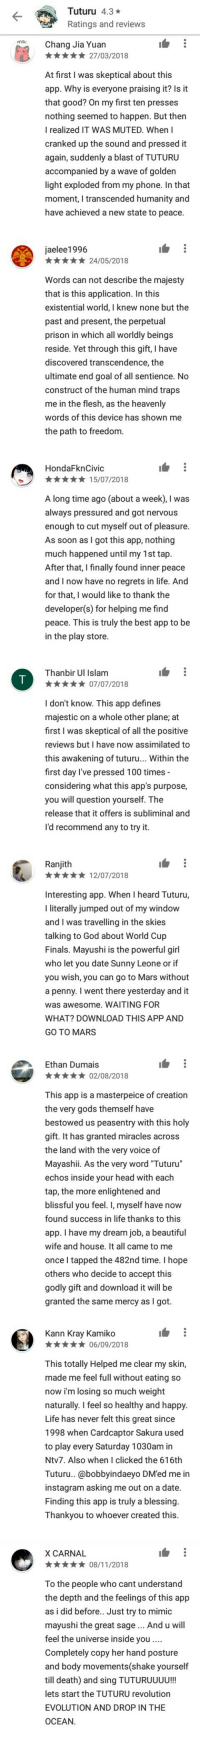 """Anime, Beautiful, and Finals: **27/03/2018  At first I was skeptical about this  app. Why is everyone praising it? Is it  that good? On my first ten presses  nothing seemed to happen. But then  I realized IT WAS MUTED. When I  cranked up the sound and pressed it  again, suddenly a blast of TUTURU  accompanied by a wave of golden  light exploded from my phone. In that  moment, I transcended humanity and  have achieved a new state to peace.  Words can not describe the majesty  existential world, I knew none but the  prison in which all worldly beings  reside. Yet through this gift, I have  ultimate end goal of all sentience. No  construct of the human mind traps  words of this device has shown me  x15/07/2018  A long time ago (about a week), I was  enough to cut myself out of pleasure.  As soon as I got this app, nothing  After that, I finally found inner peace  and I now have no regrets in life. And  for that, I would like to thank the  peace. This is truly the best app to be  ***07/07/2018  I don't know. This app defines  majestic on a whole other plane; at  first I was skeptical of all the positive  reviews but I have now assimilated to  this awakening of tuturu... Within the  considering what this app's purpose,  release that it offers is subliminal and  *12/07/2018  Iliterally jumped out of my window  and I was travelling in the skies  talking to God about World Cup  Finals. Mayushi is the powerful girl  who let you date Sunny Leone or if  you wish, you can go to Mars without  a penny. I went there yesterday and it  was awesome. WAITING FOR  WHAT? DOWNLOAD THIS APP AND  **02/08/2018  This app is a masterpeice of creation  bestowed us peasentry with this holy  the land with the very voice of  Mayashii. As the very word Tuturu""""  blissful you feel. I, myself have now  found success in life thanks to this  app. I have my dream job, a beautiful  wife and house. It all came to me  once I tapped the 482nd time. I hope  godly gift and download it will be  granted the sam"""